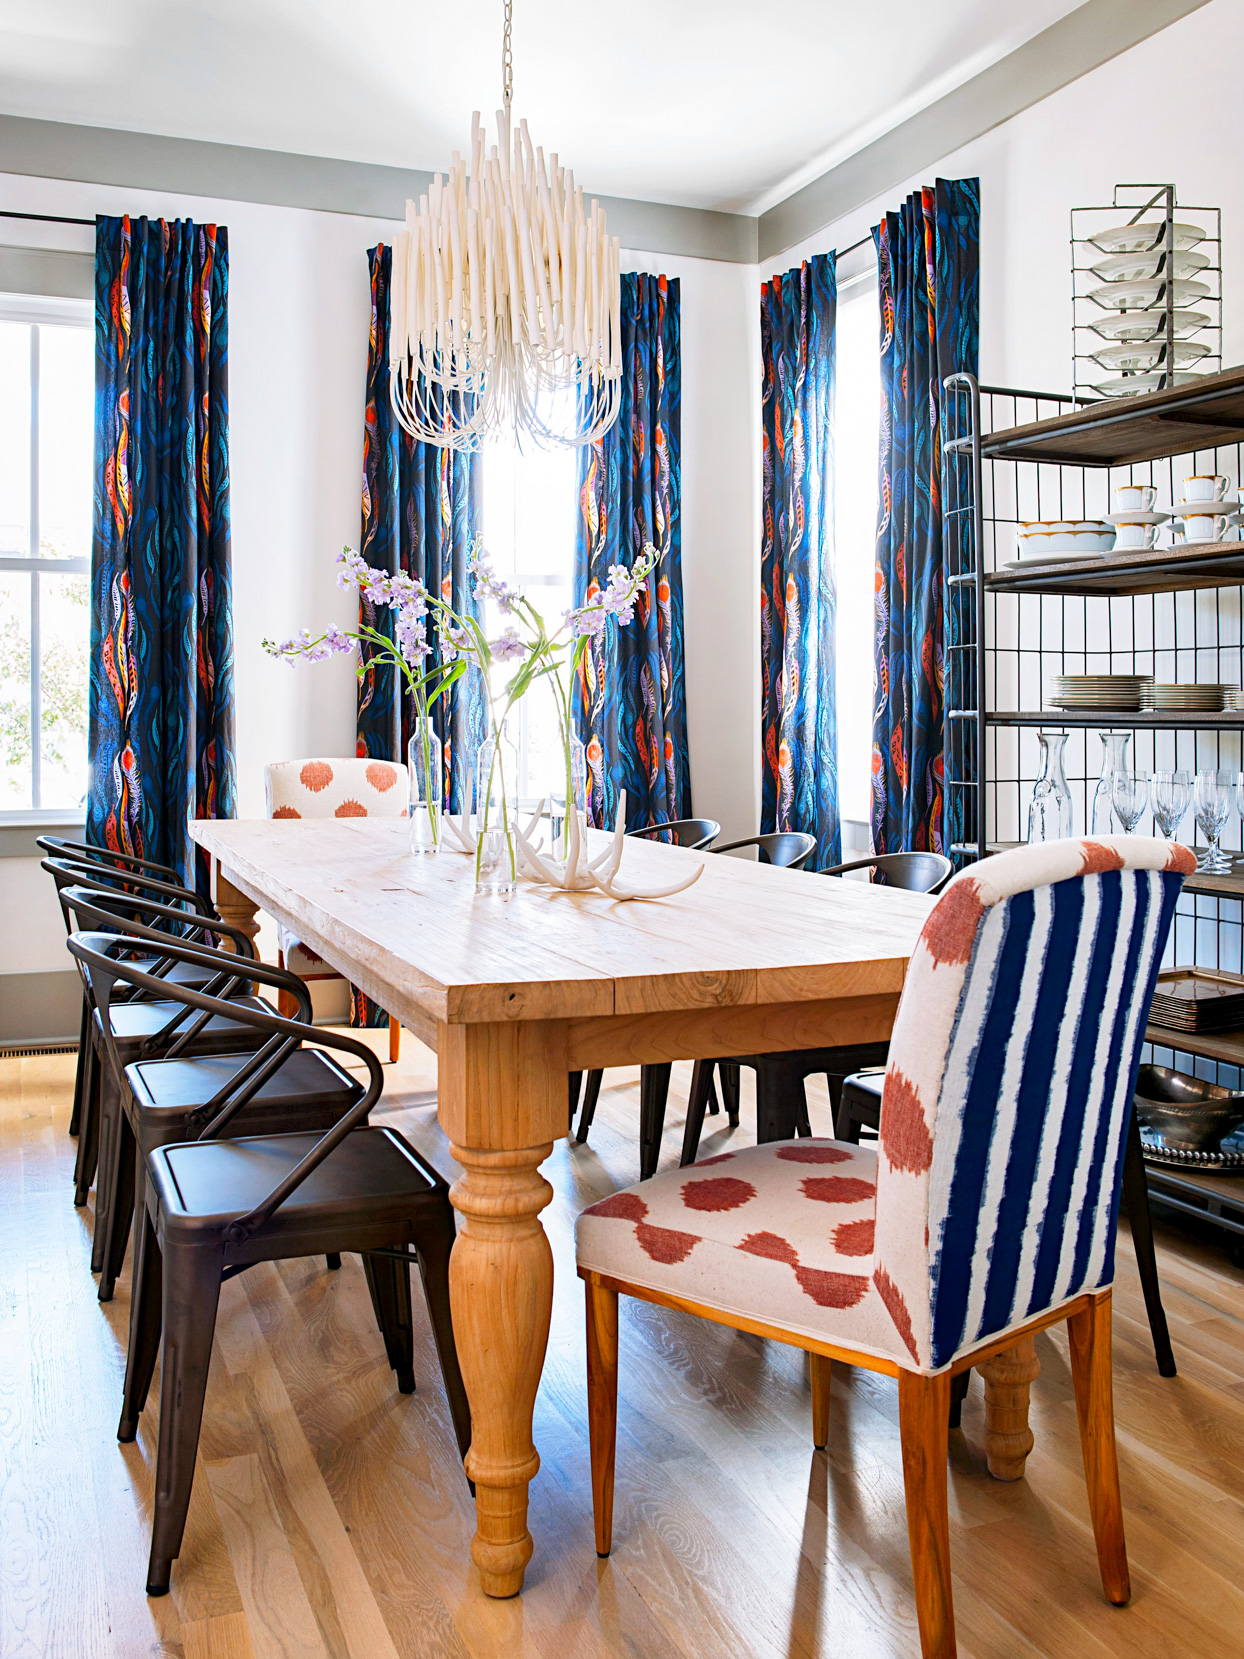 dining room with patterned blue and orange chairs and curtains